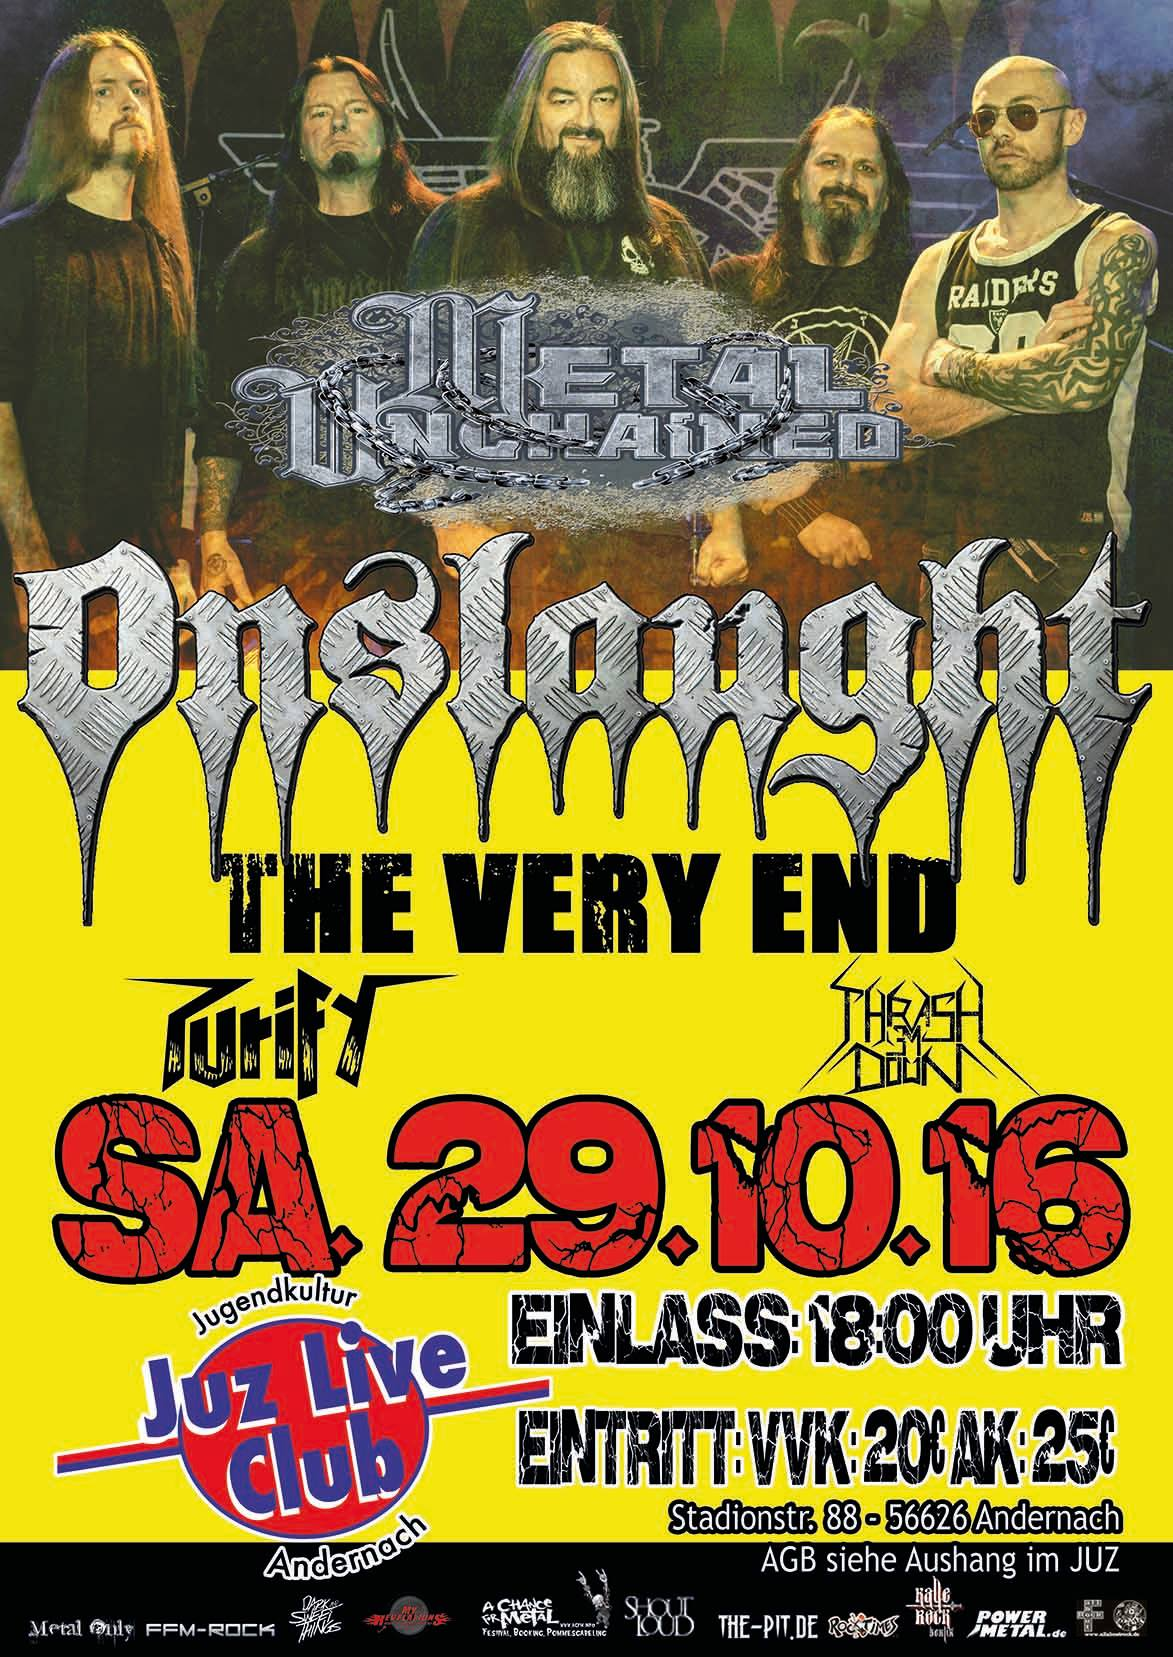 The-Very-End-Onslaught-live-Flyer-Update